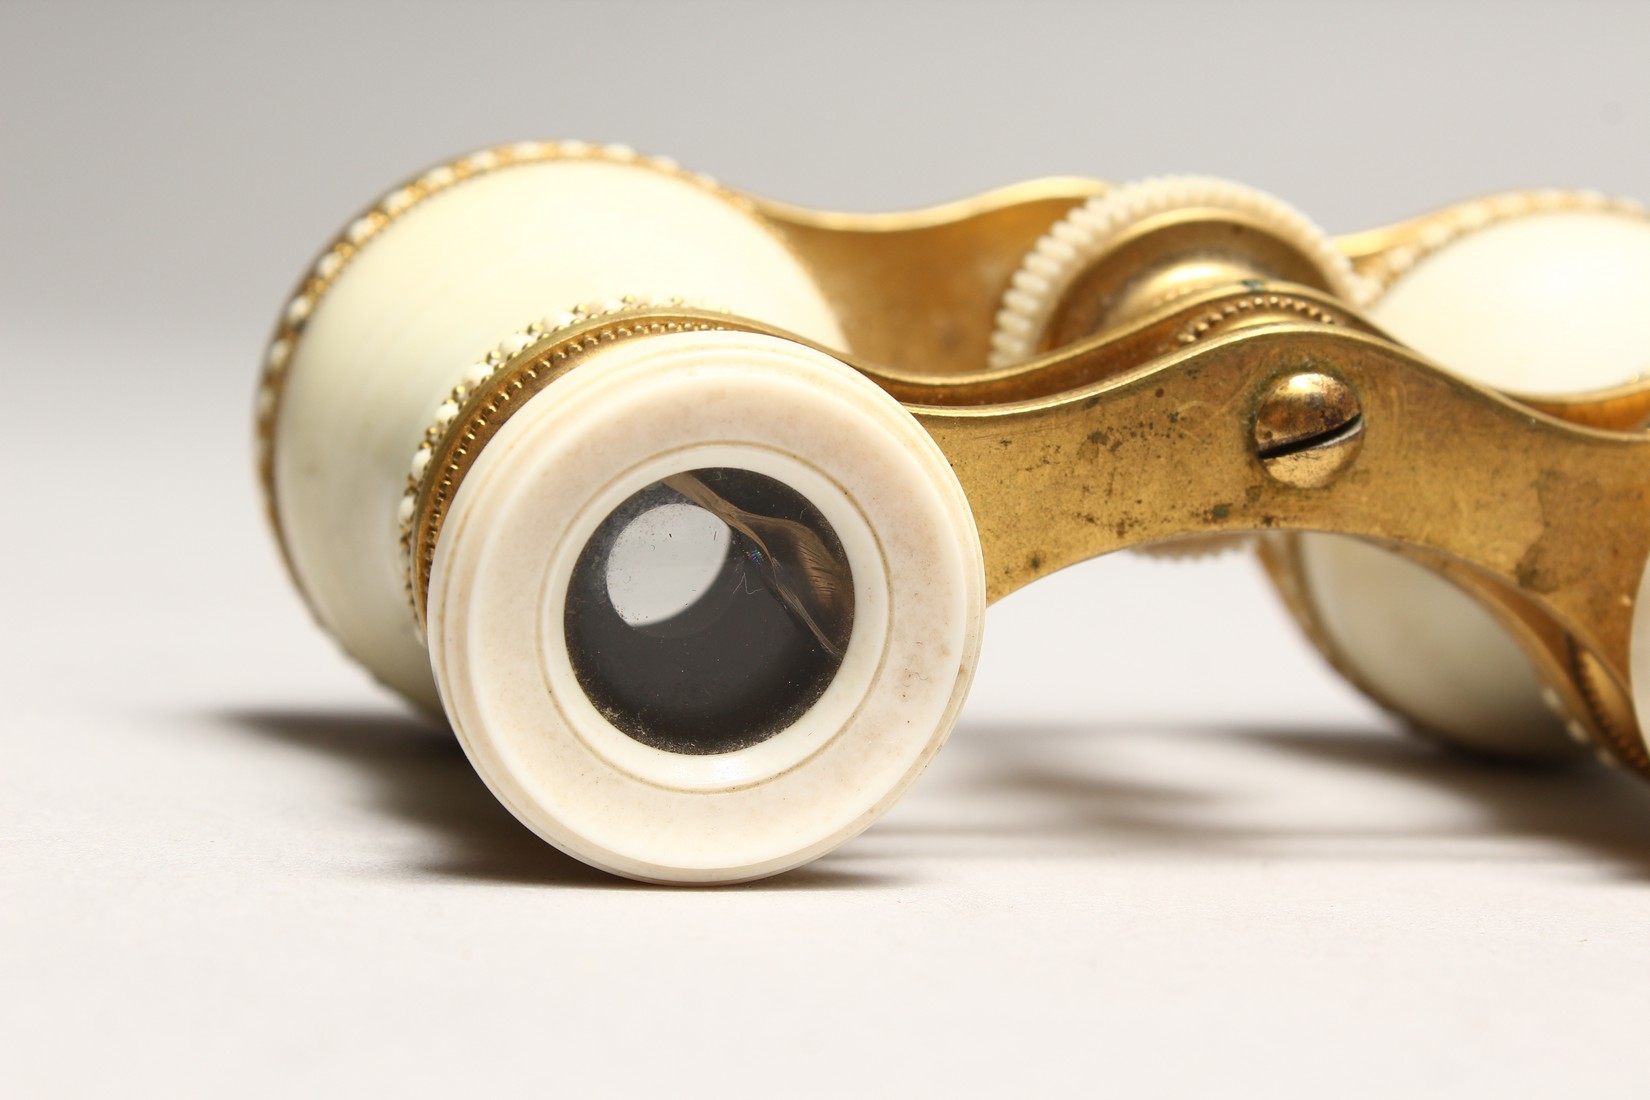 A PAIR OF IVORY AND GILT OPERA GLASSES 4.6ins long. - Image 4 of 6